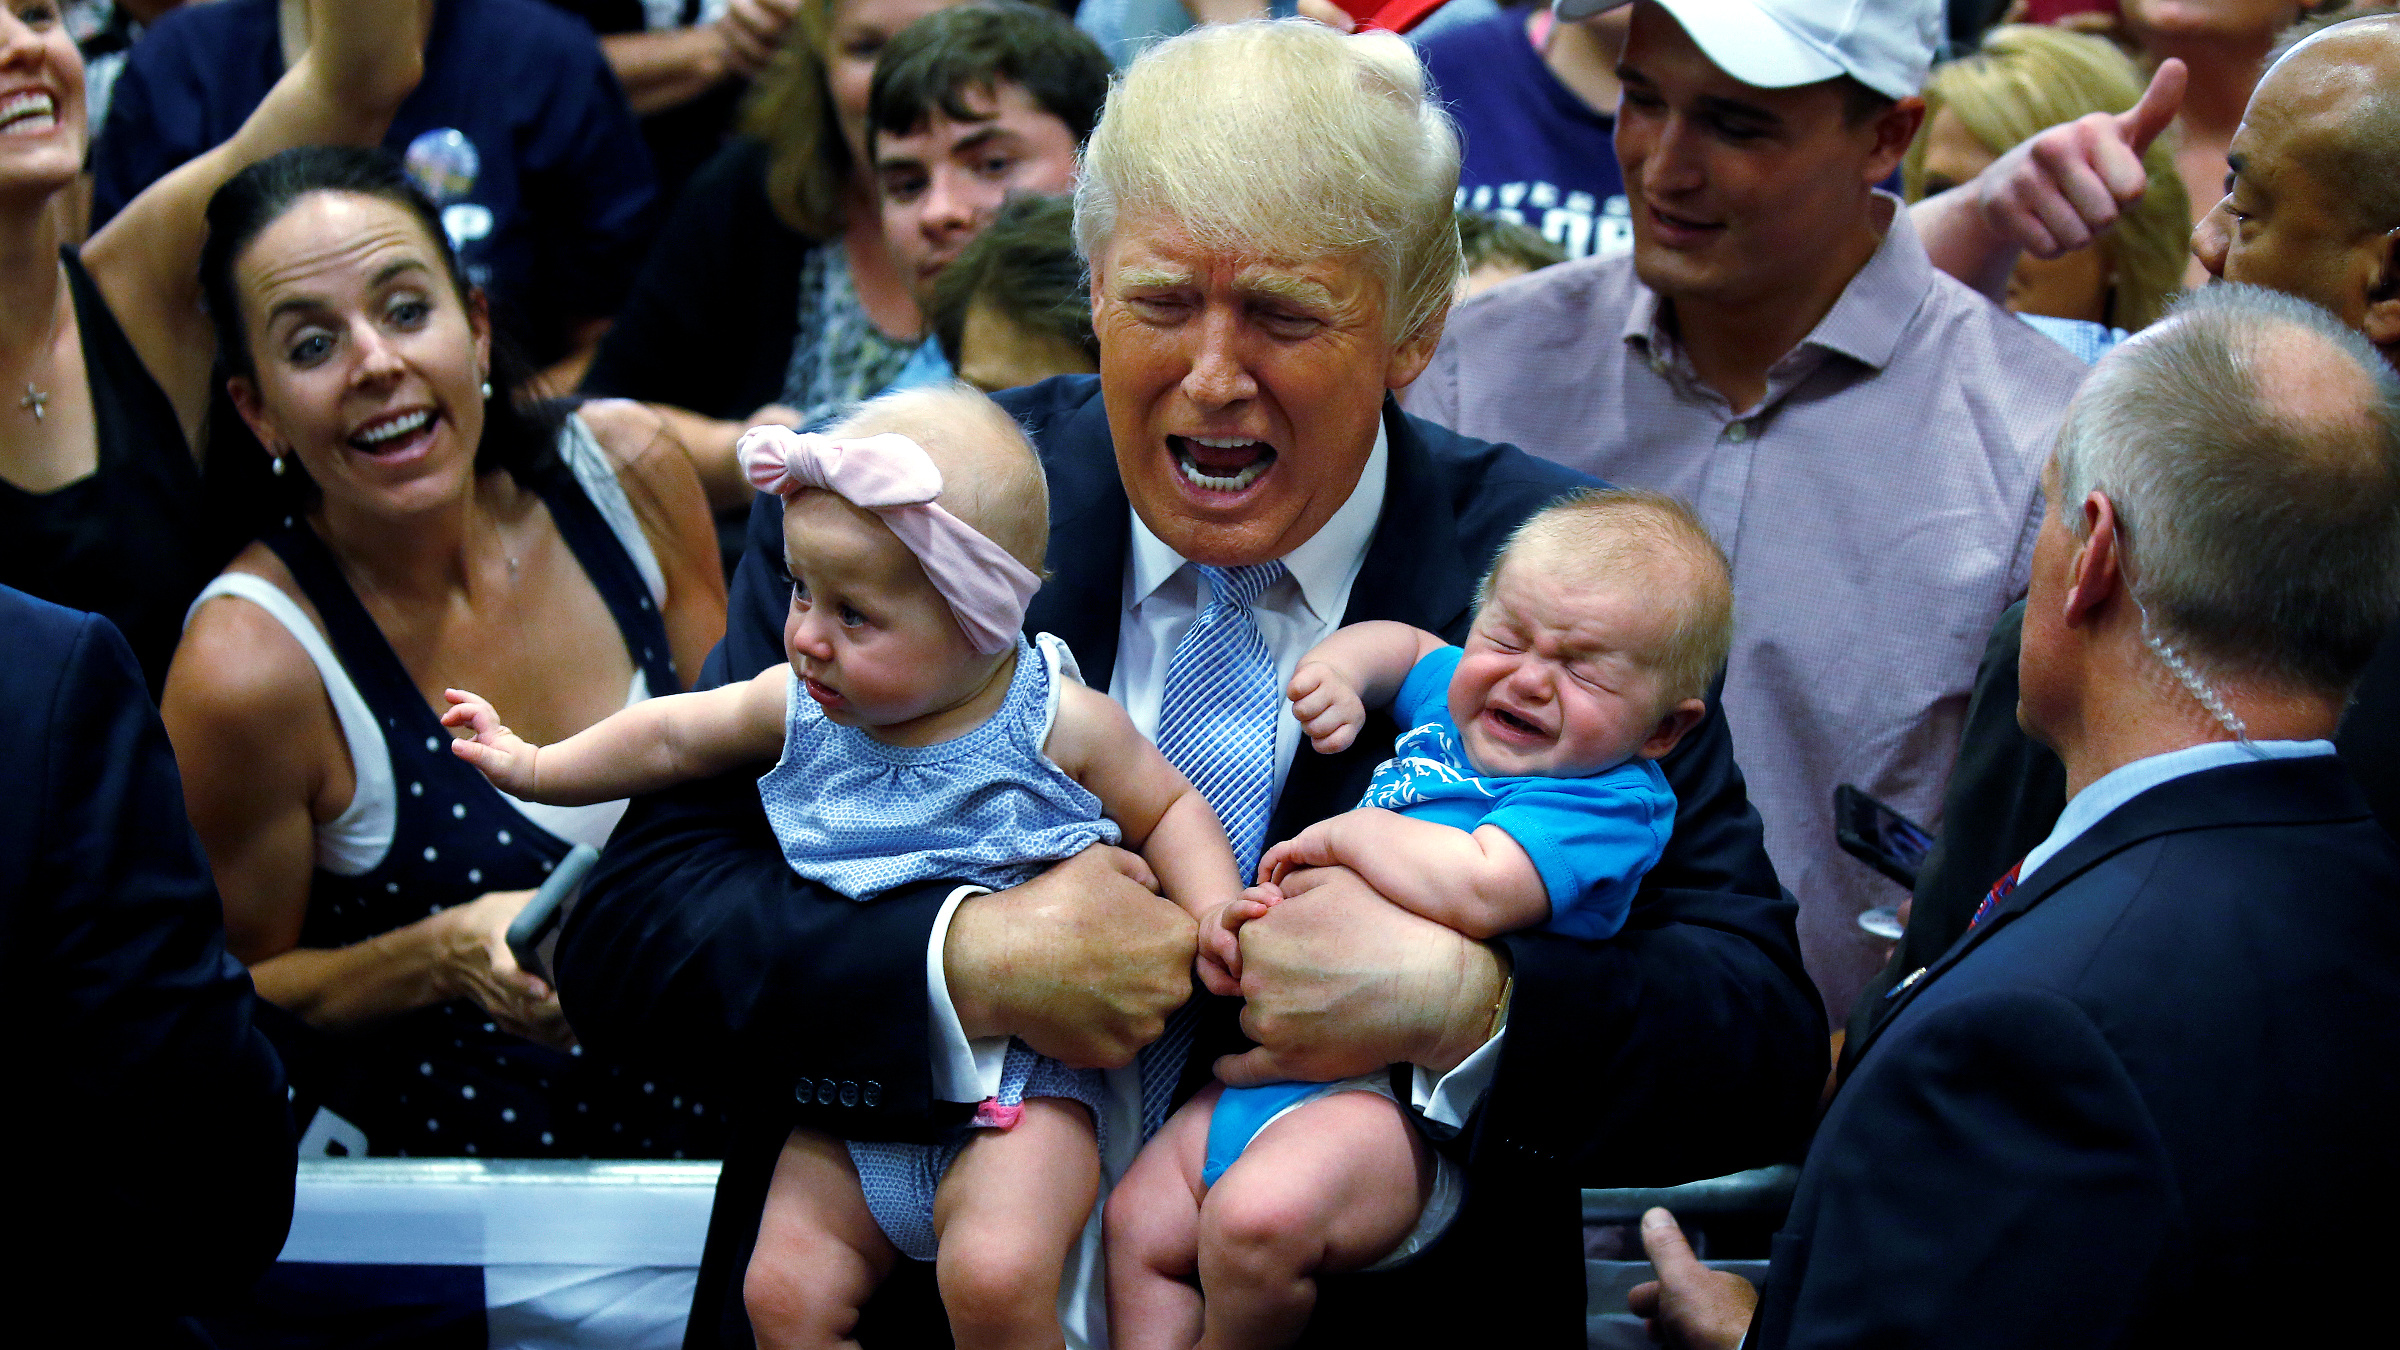 QUALITY REPEAT - Republican presidential nominee Donald Trump holds babies at a campaign rally in Colorado Springs, Colorado, U.S., July 29, 2016.